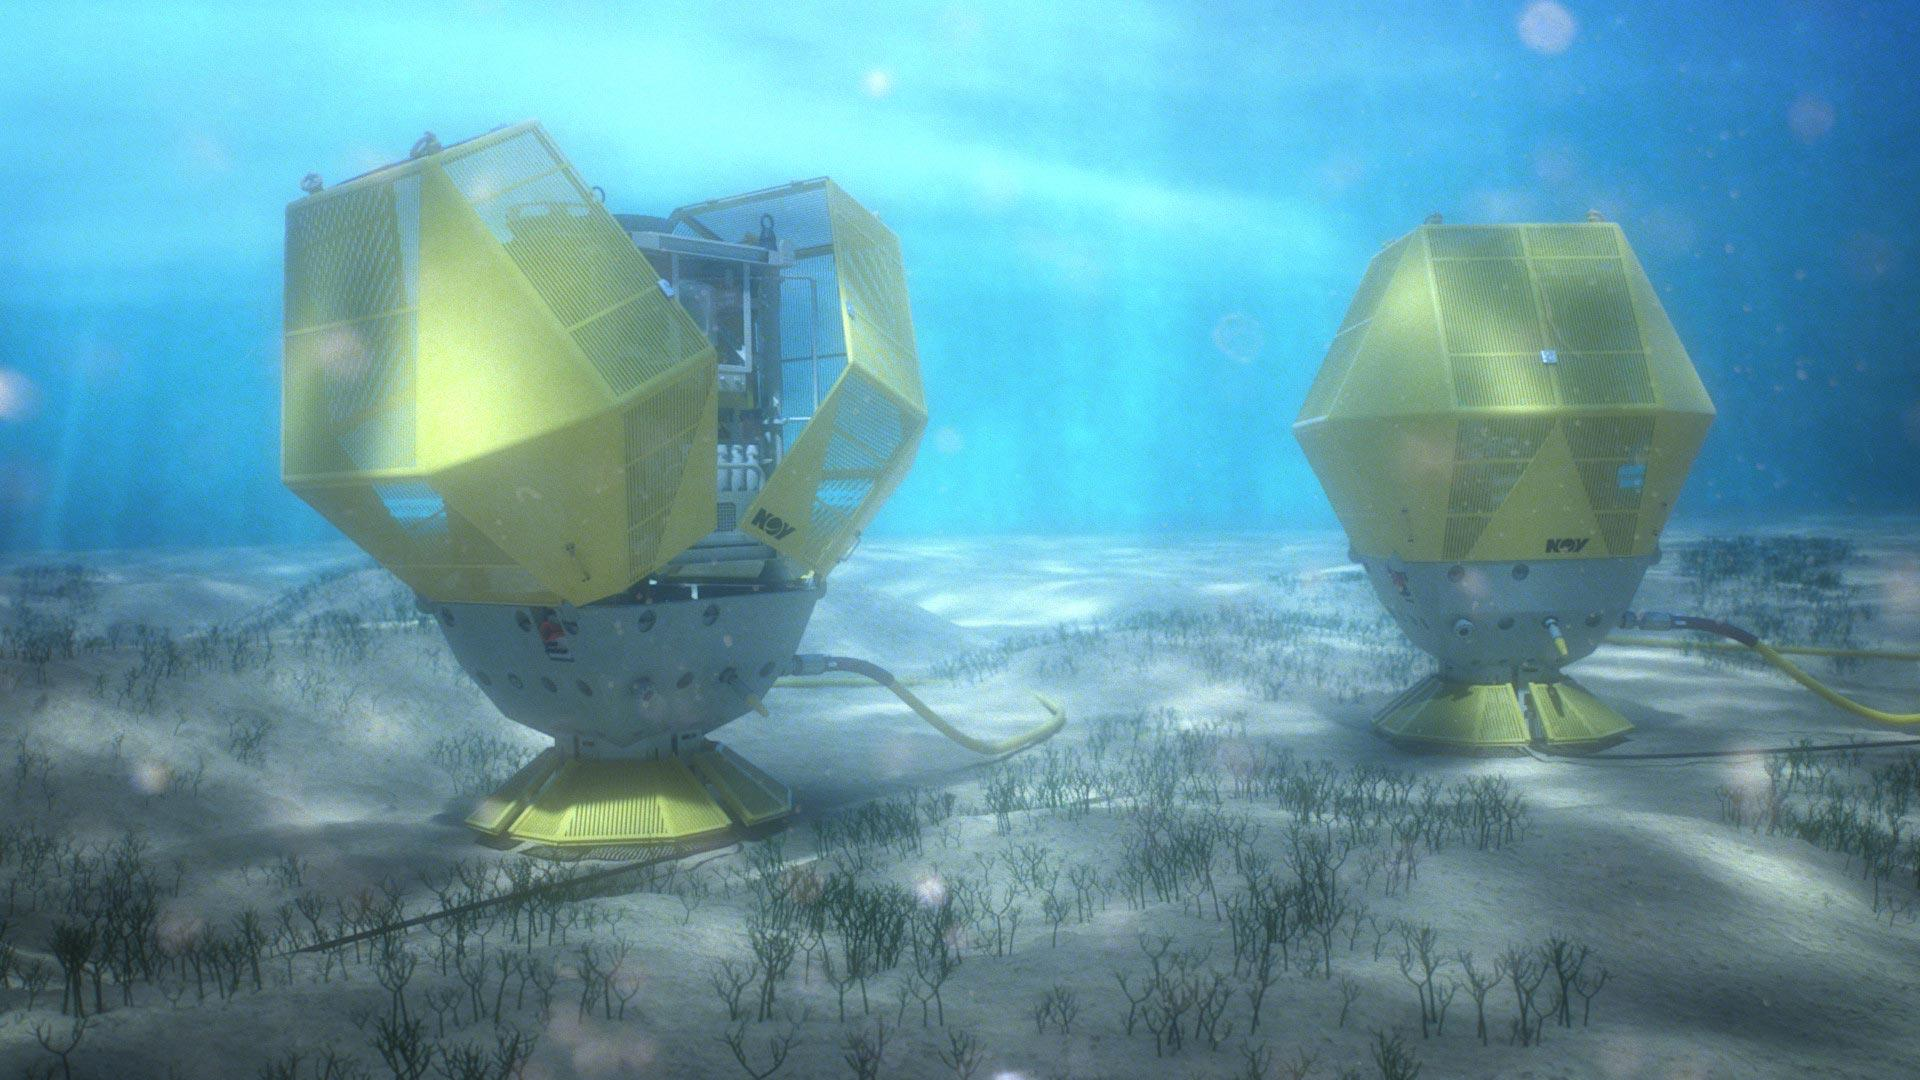 Fiberglass protection covers in shallow water for impact protection subsea